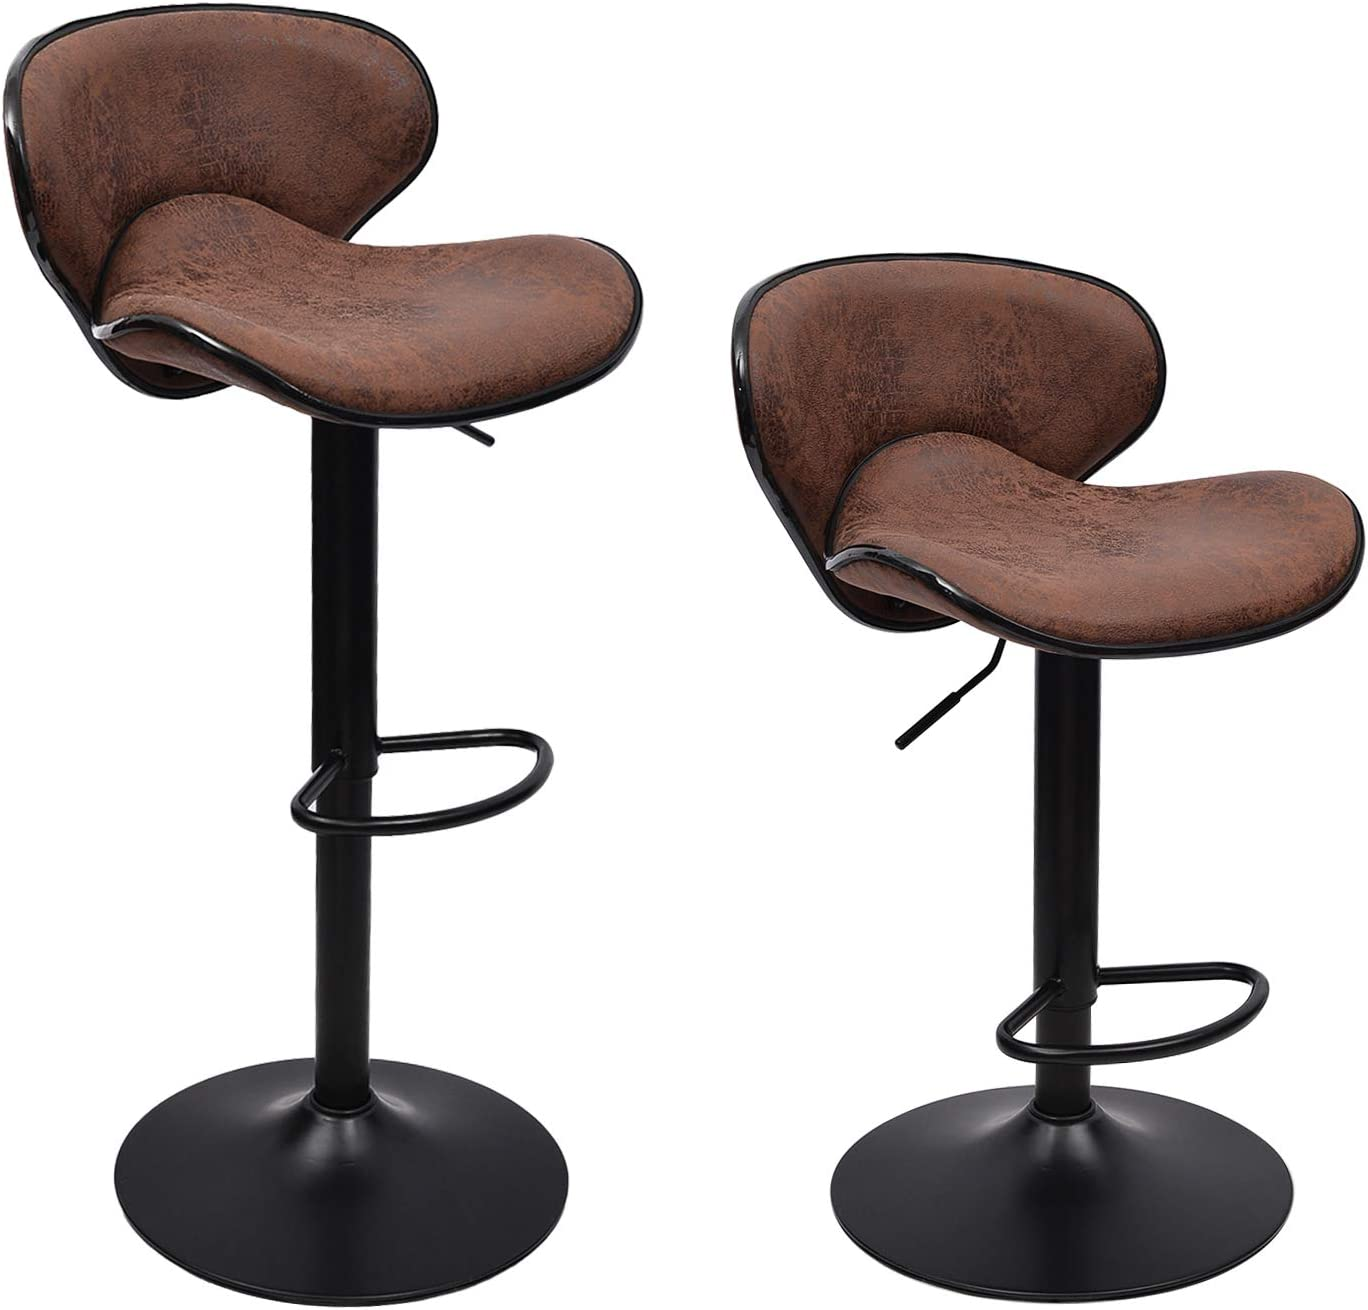 WAYTRIM Adjustable Bar Stools Set of 2 Modern Swivel Barstools Chairs, 360 Degree Swivel Counter Height Chair for Bar Kitchen Indoor Outdoor Use, Retro Brown